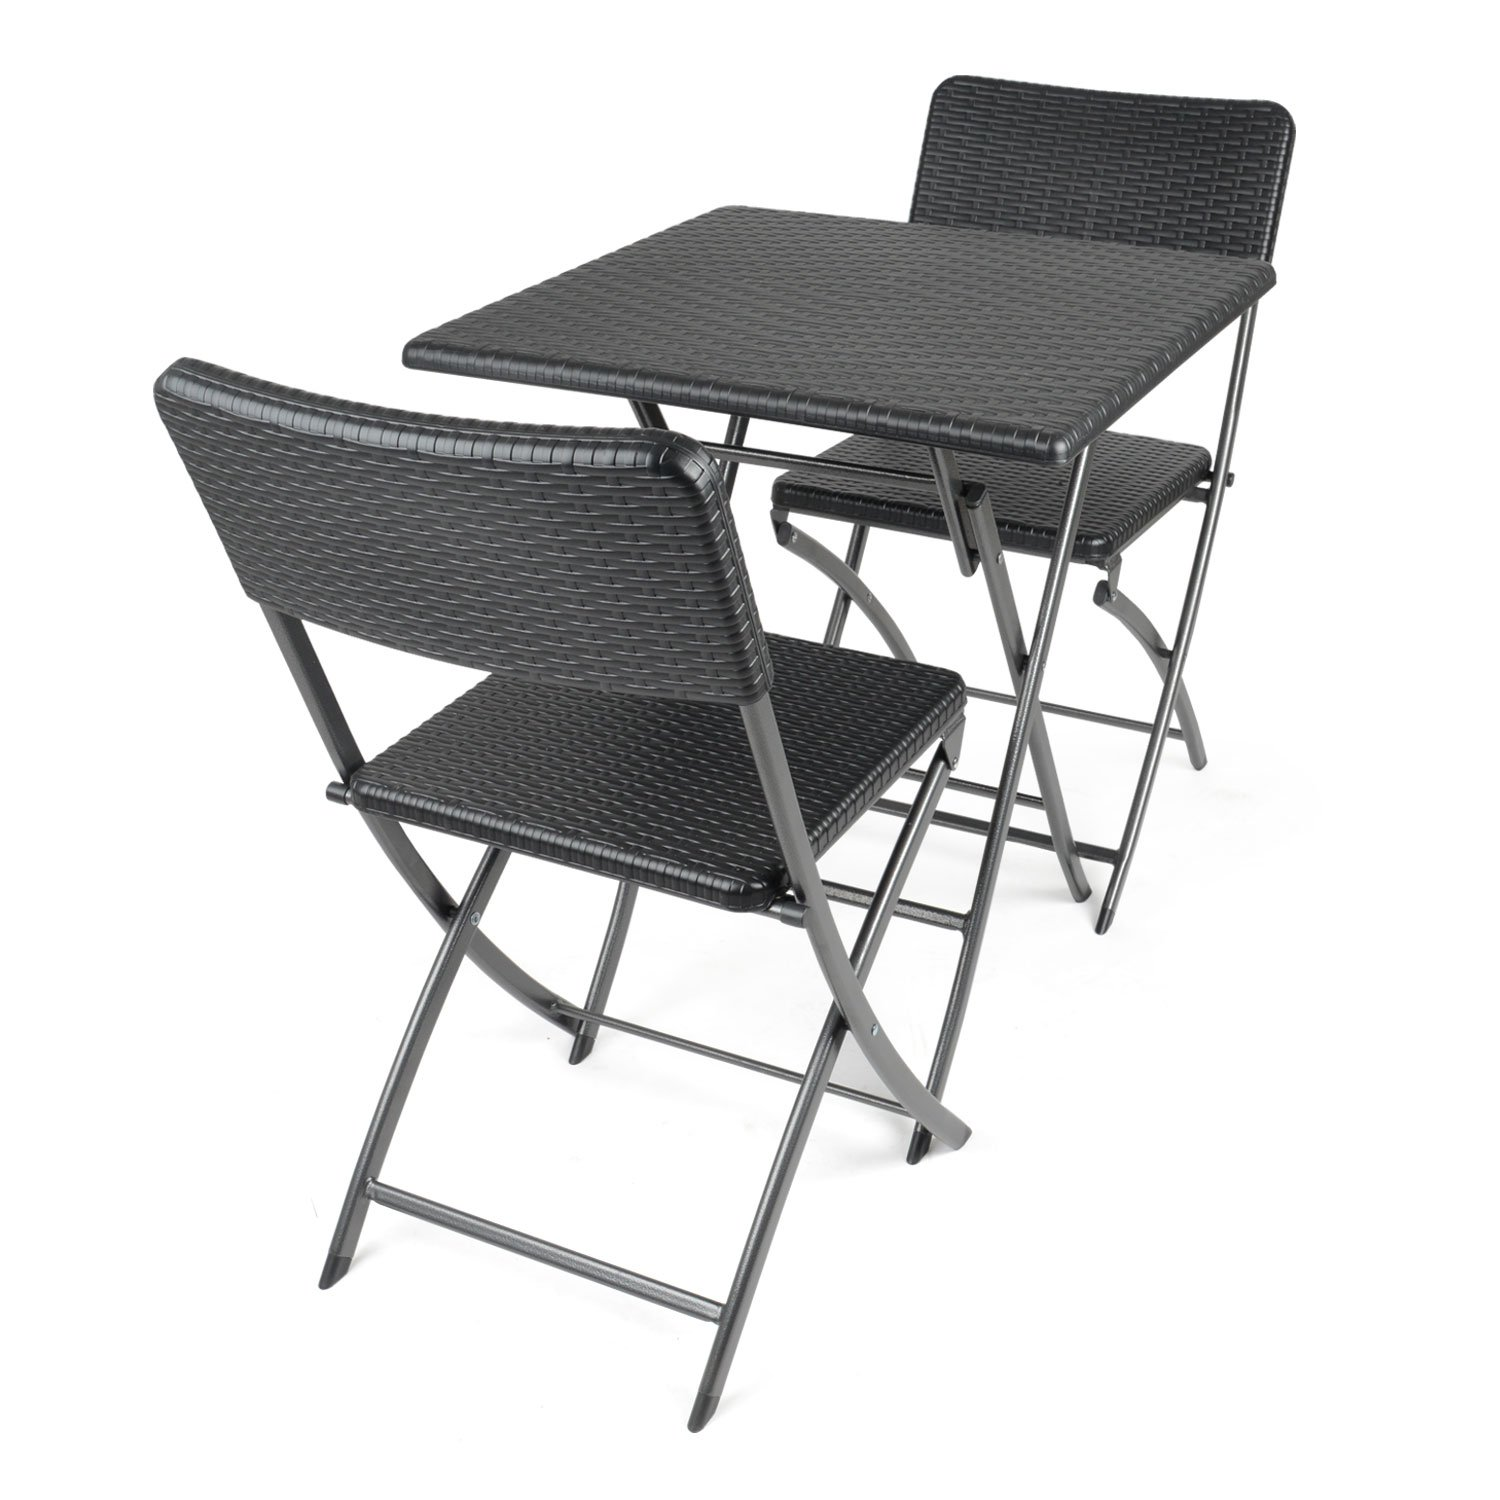 CHRISTOW Poly Rattan 6ft Folding Table 6 Chairs Set Garden Patio Camping Outdoor Dining